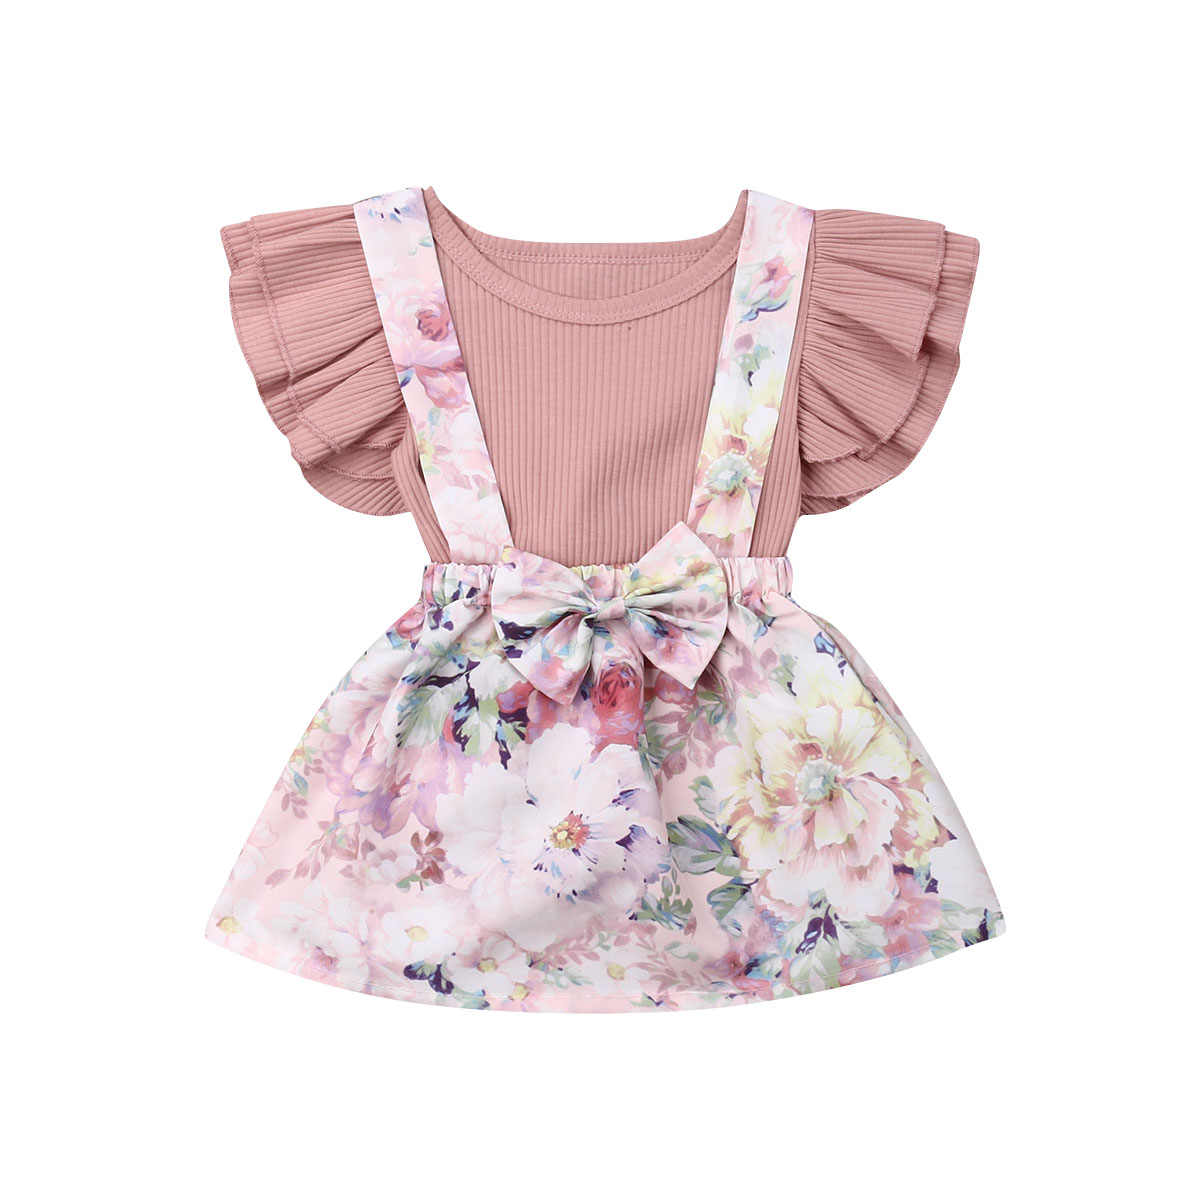 Newborn Toddler Baby Girls 0-3Y Clothes Sets Ruffles Sleeve Pink Romper Tops+Floral Overall Dress